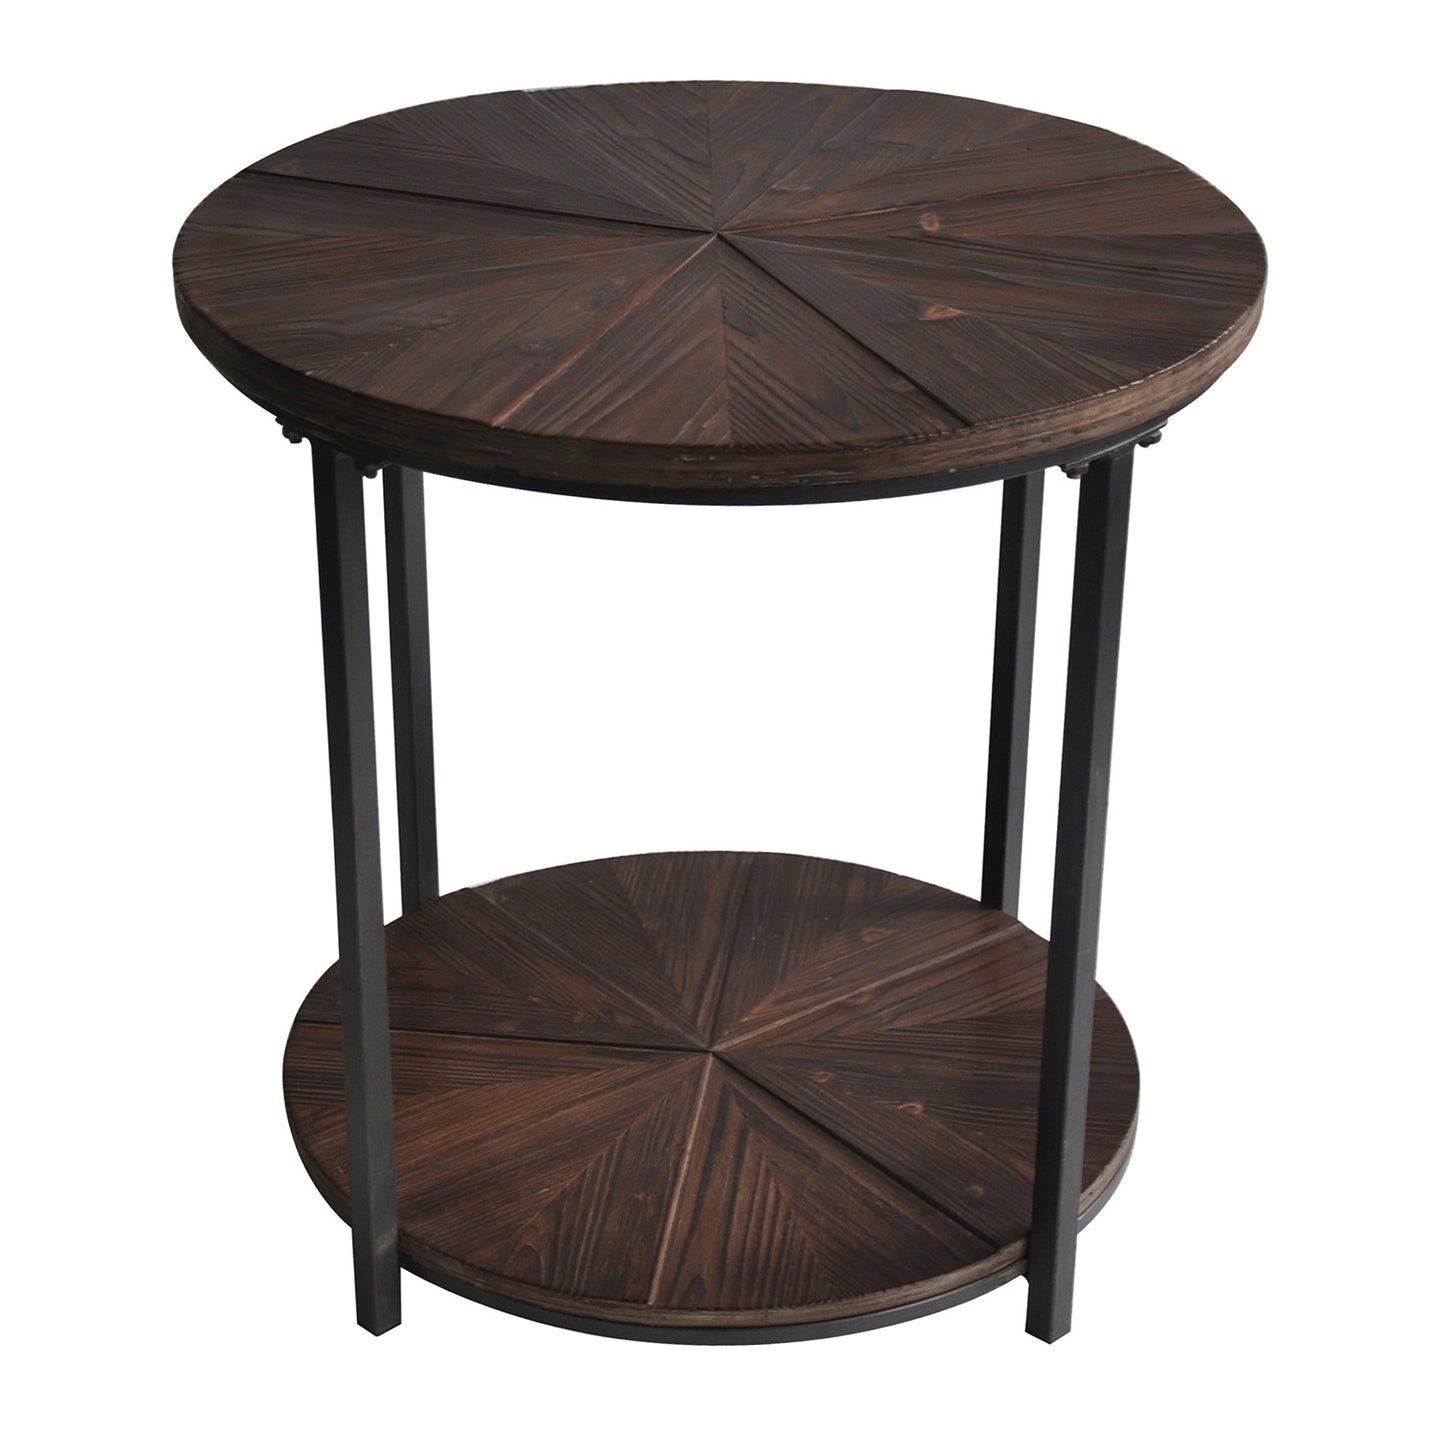 Jackson Round Metal and Rustic Wood End Table - The Rustic Furniture Store